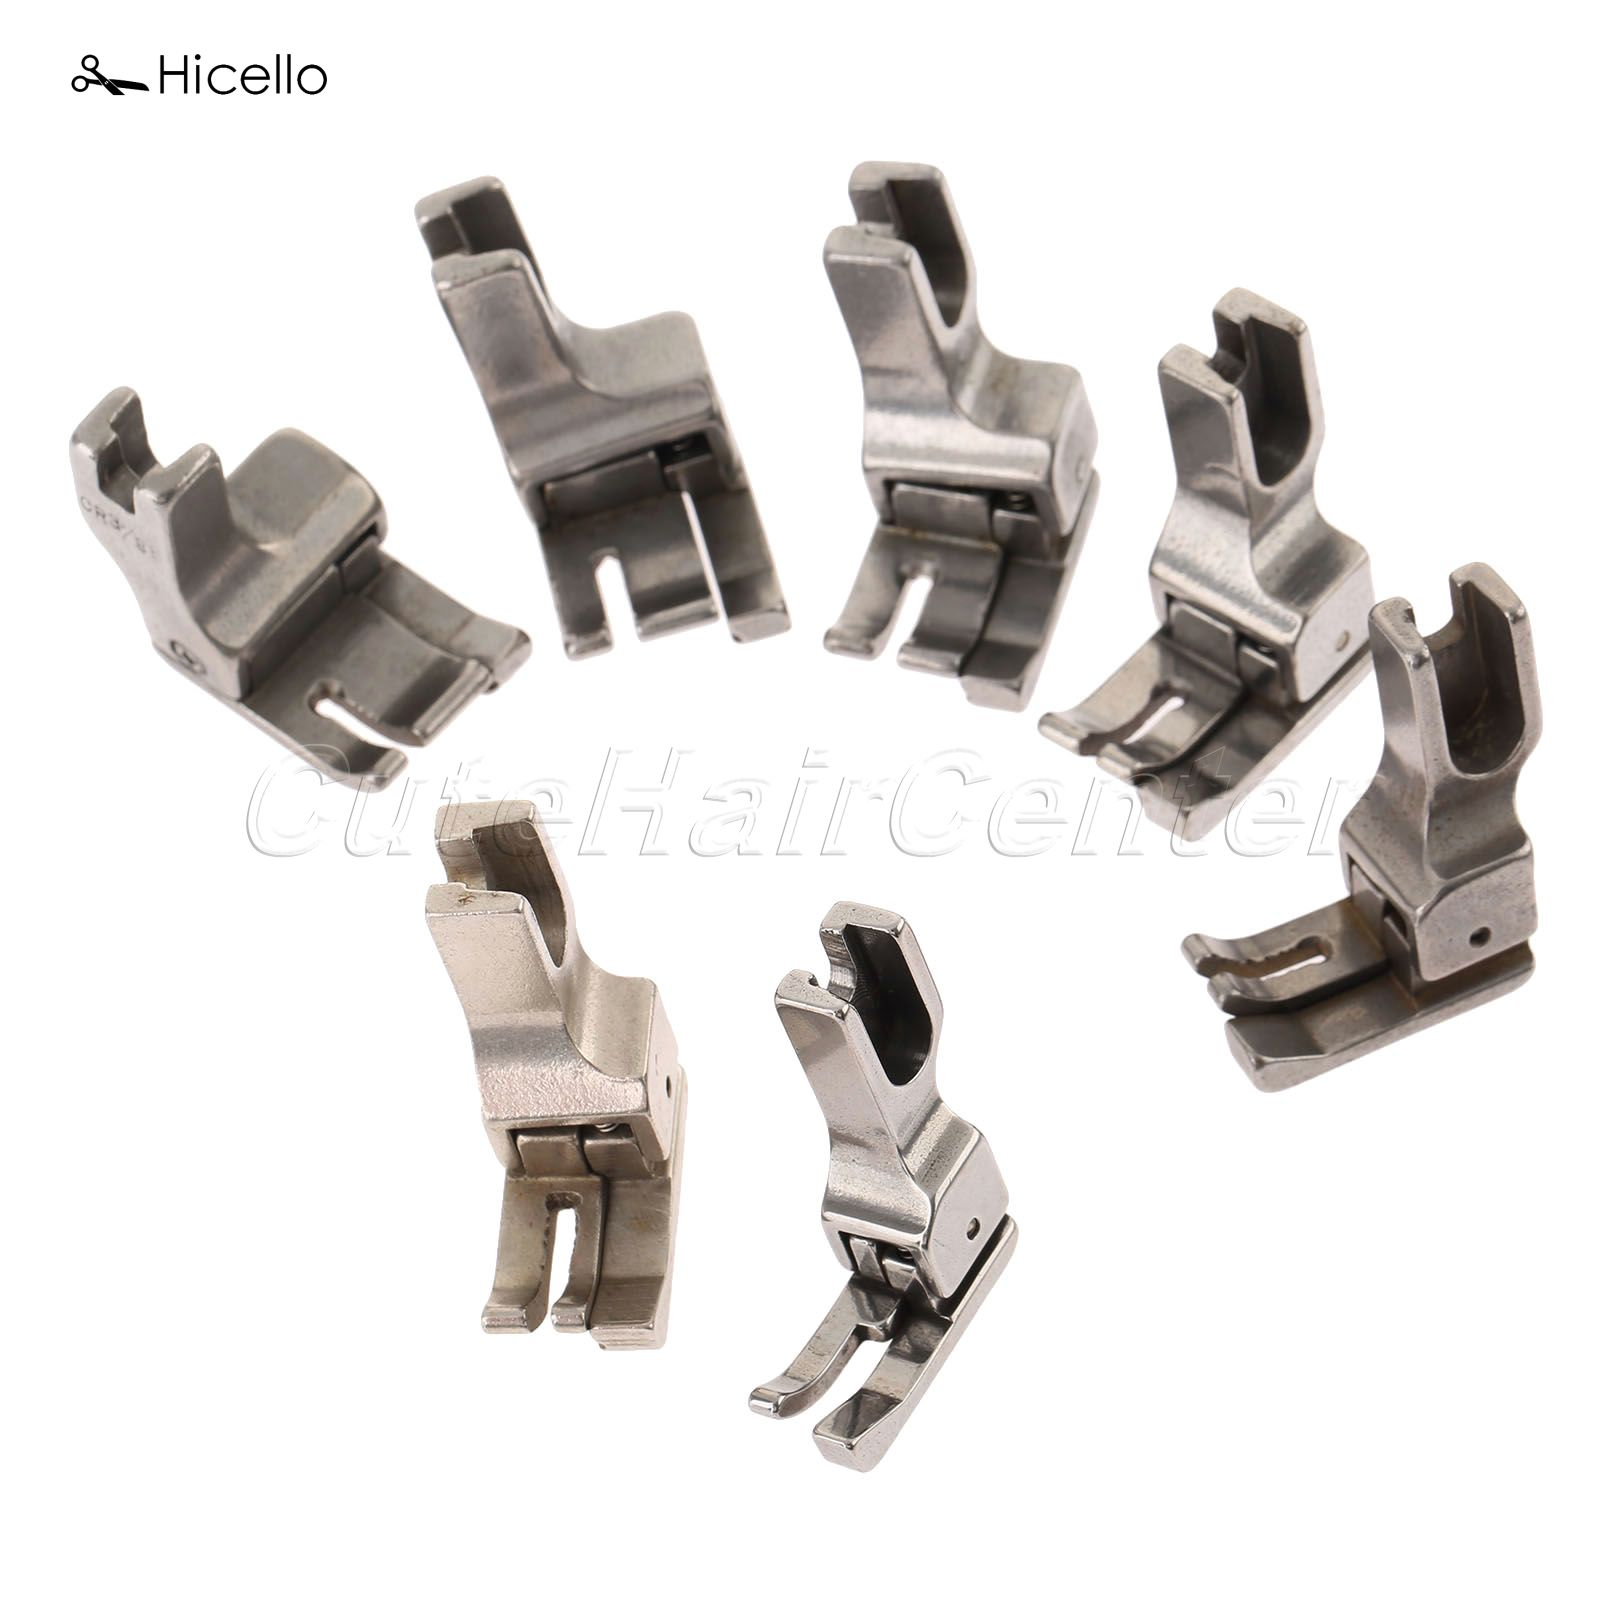 1PC Industrial Presser Foot Symaskine Fuld Stål RIGHT & WIDE Trykfod 1.6mm / 3.2mm / 4mm / 4.8mm.6.4mm / 8mm / 9.5mm costura